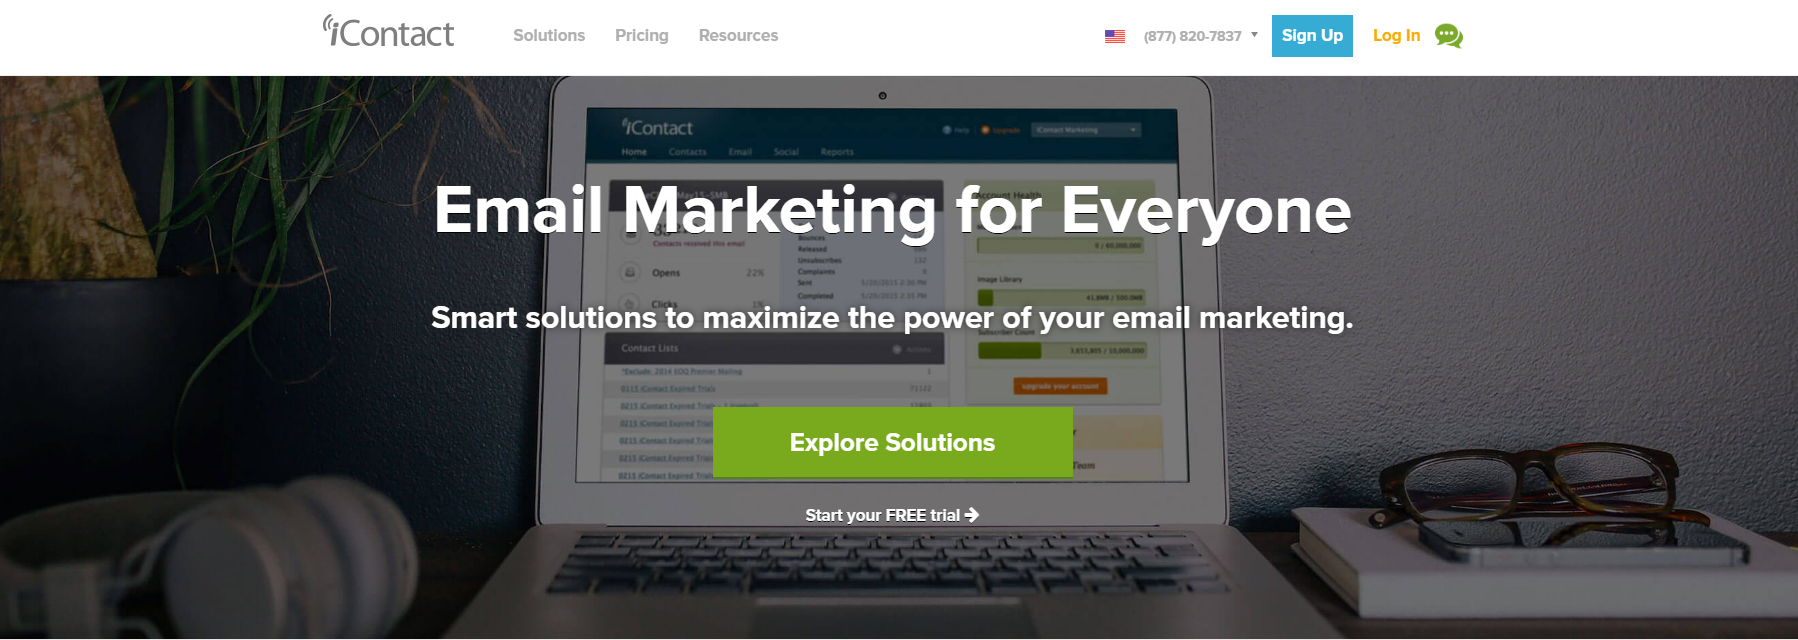 aweber email tool